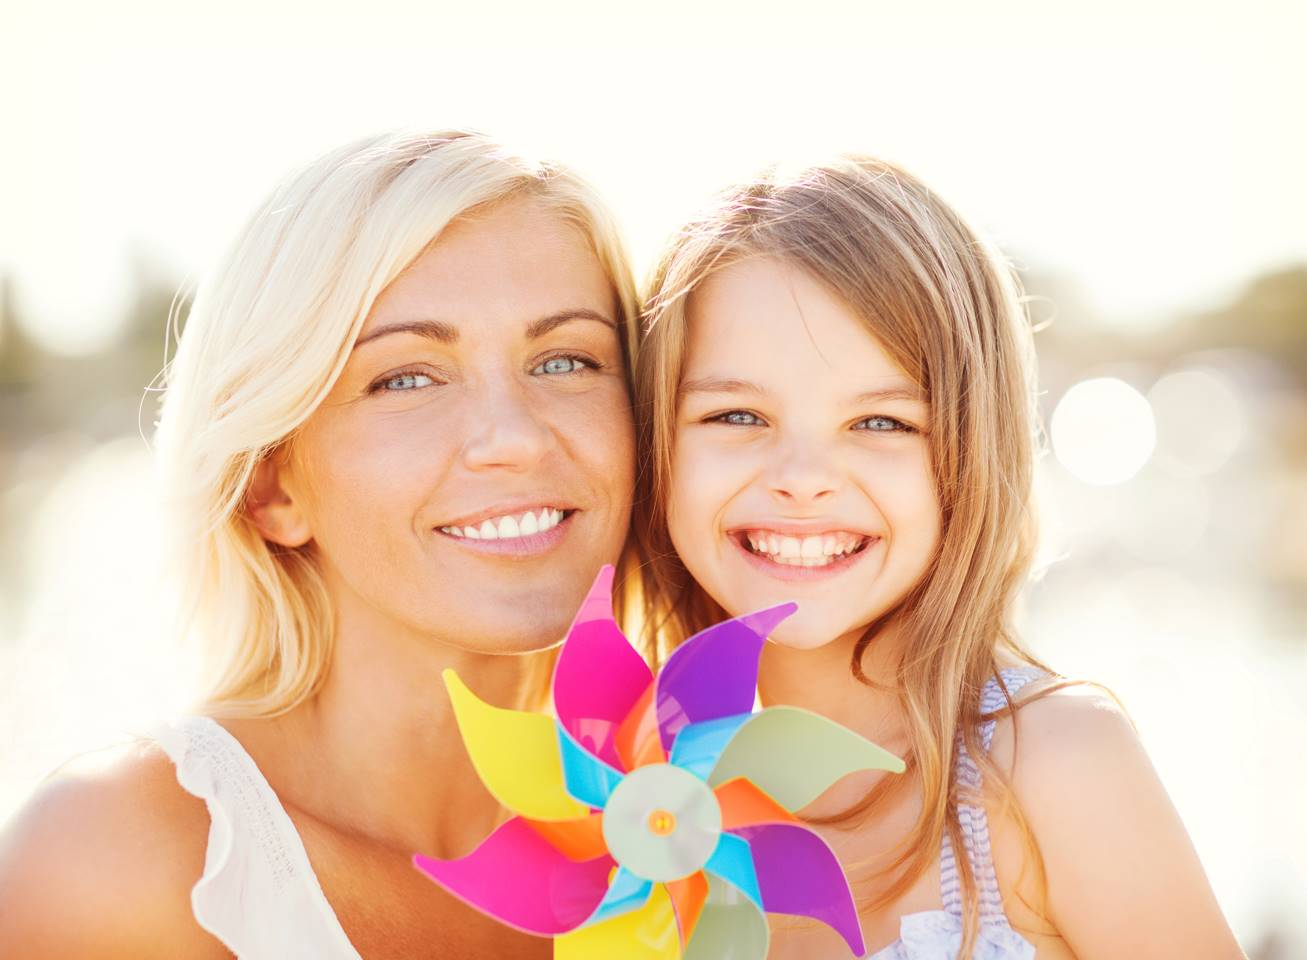 Beautiful mother and daughter smiling outside with white teeth and blue eyes